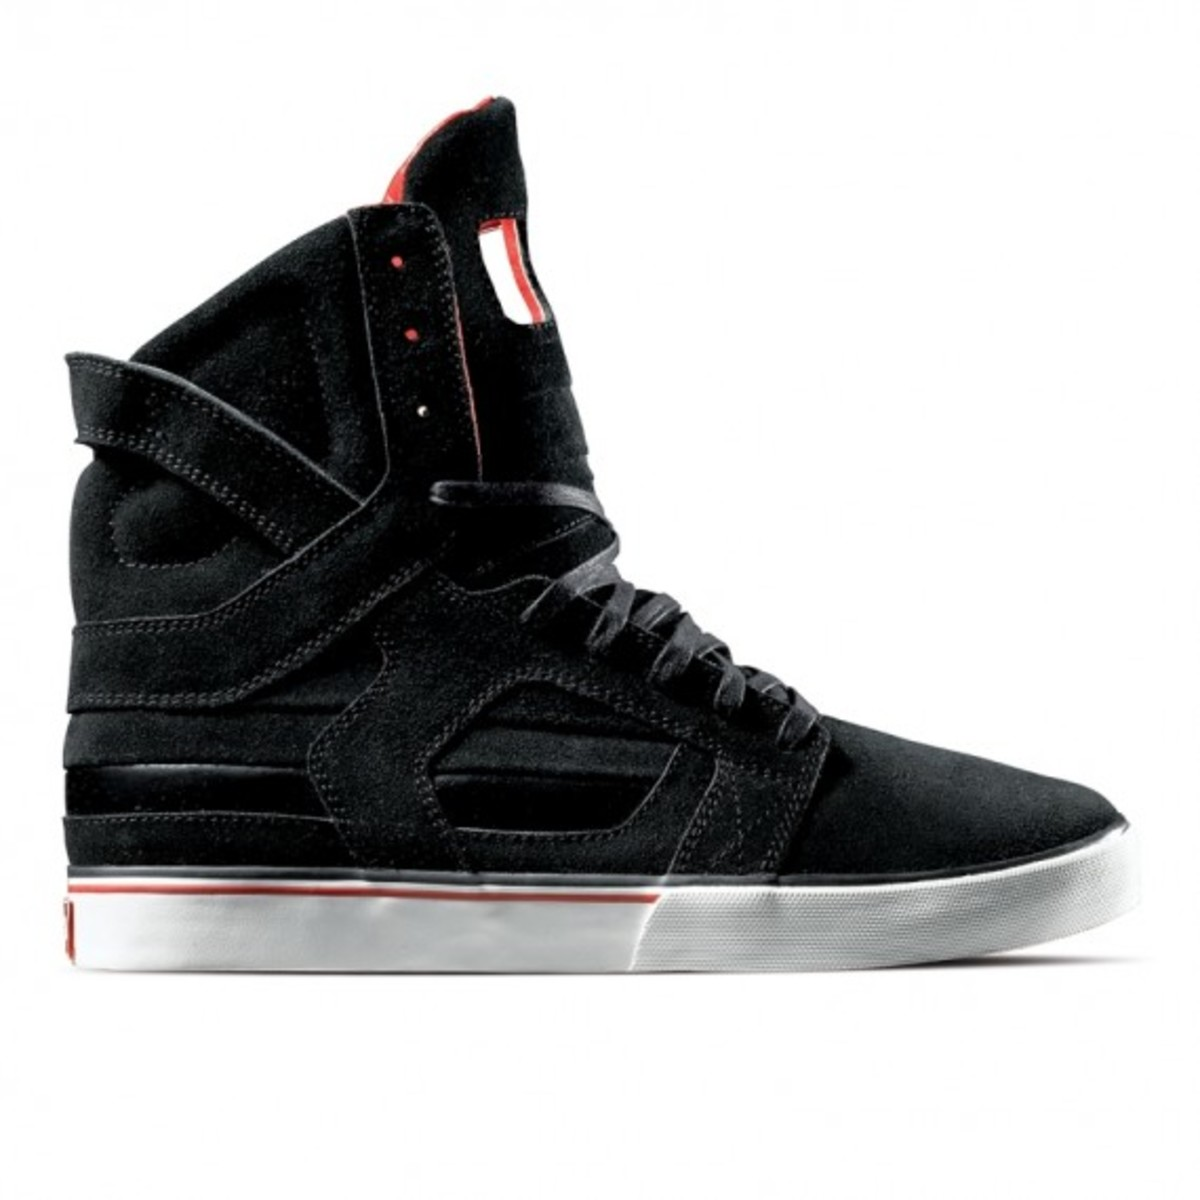 Skytop II Black Suede Patent Leather